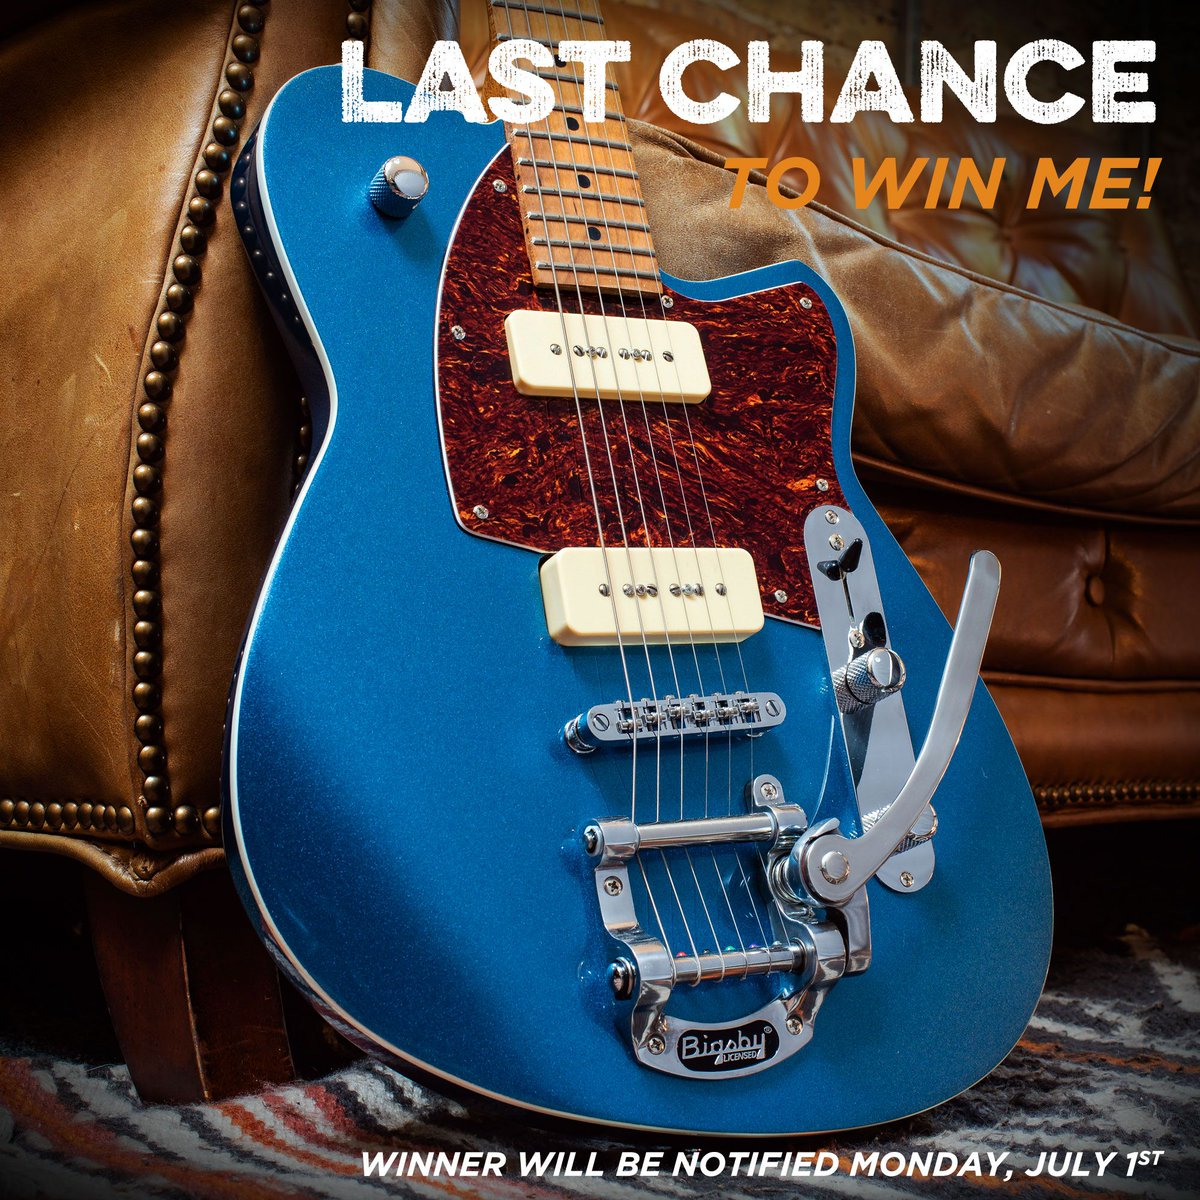 Don't miss out! Enter to win this @ReverendGuitars beaut now! Give this post a #Retweet while you can! This #CMEExclusive is headed to a loving home soon! http://bit.ly/2ZQWpYz